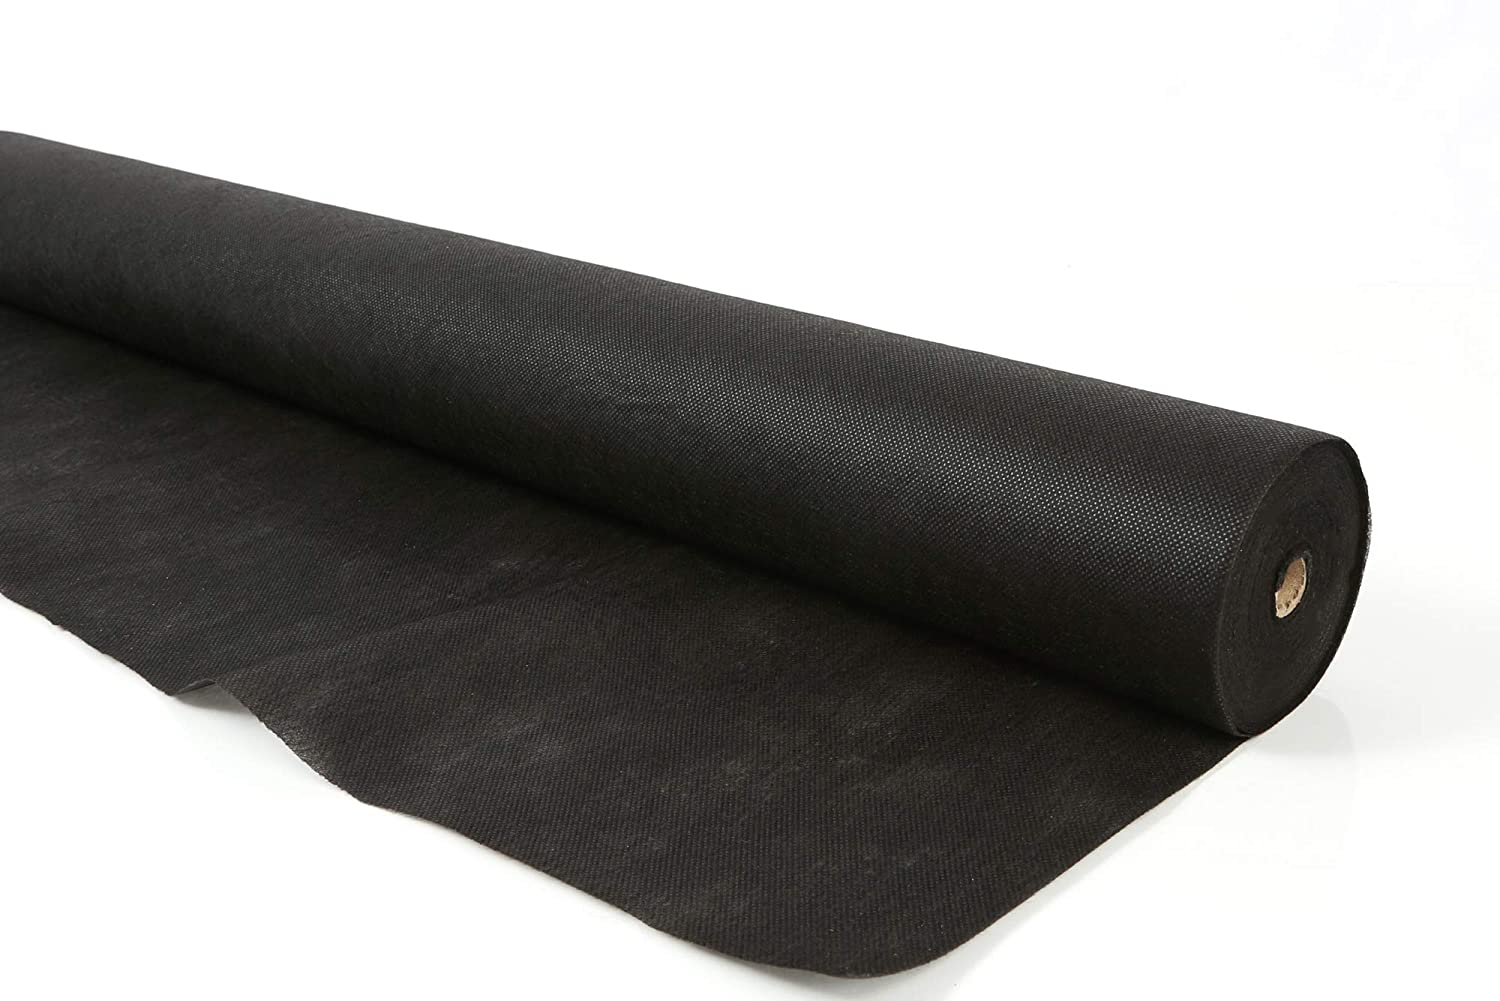 3 feet x 300 feet Black 20 YR Premium Series Landscape Fabric AHG Garden Weeds 3ft x 300ft